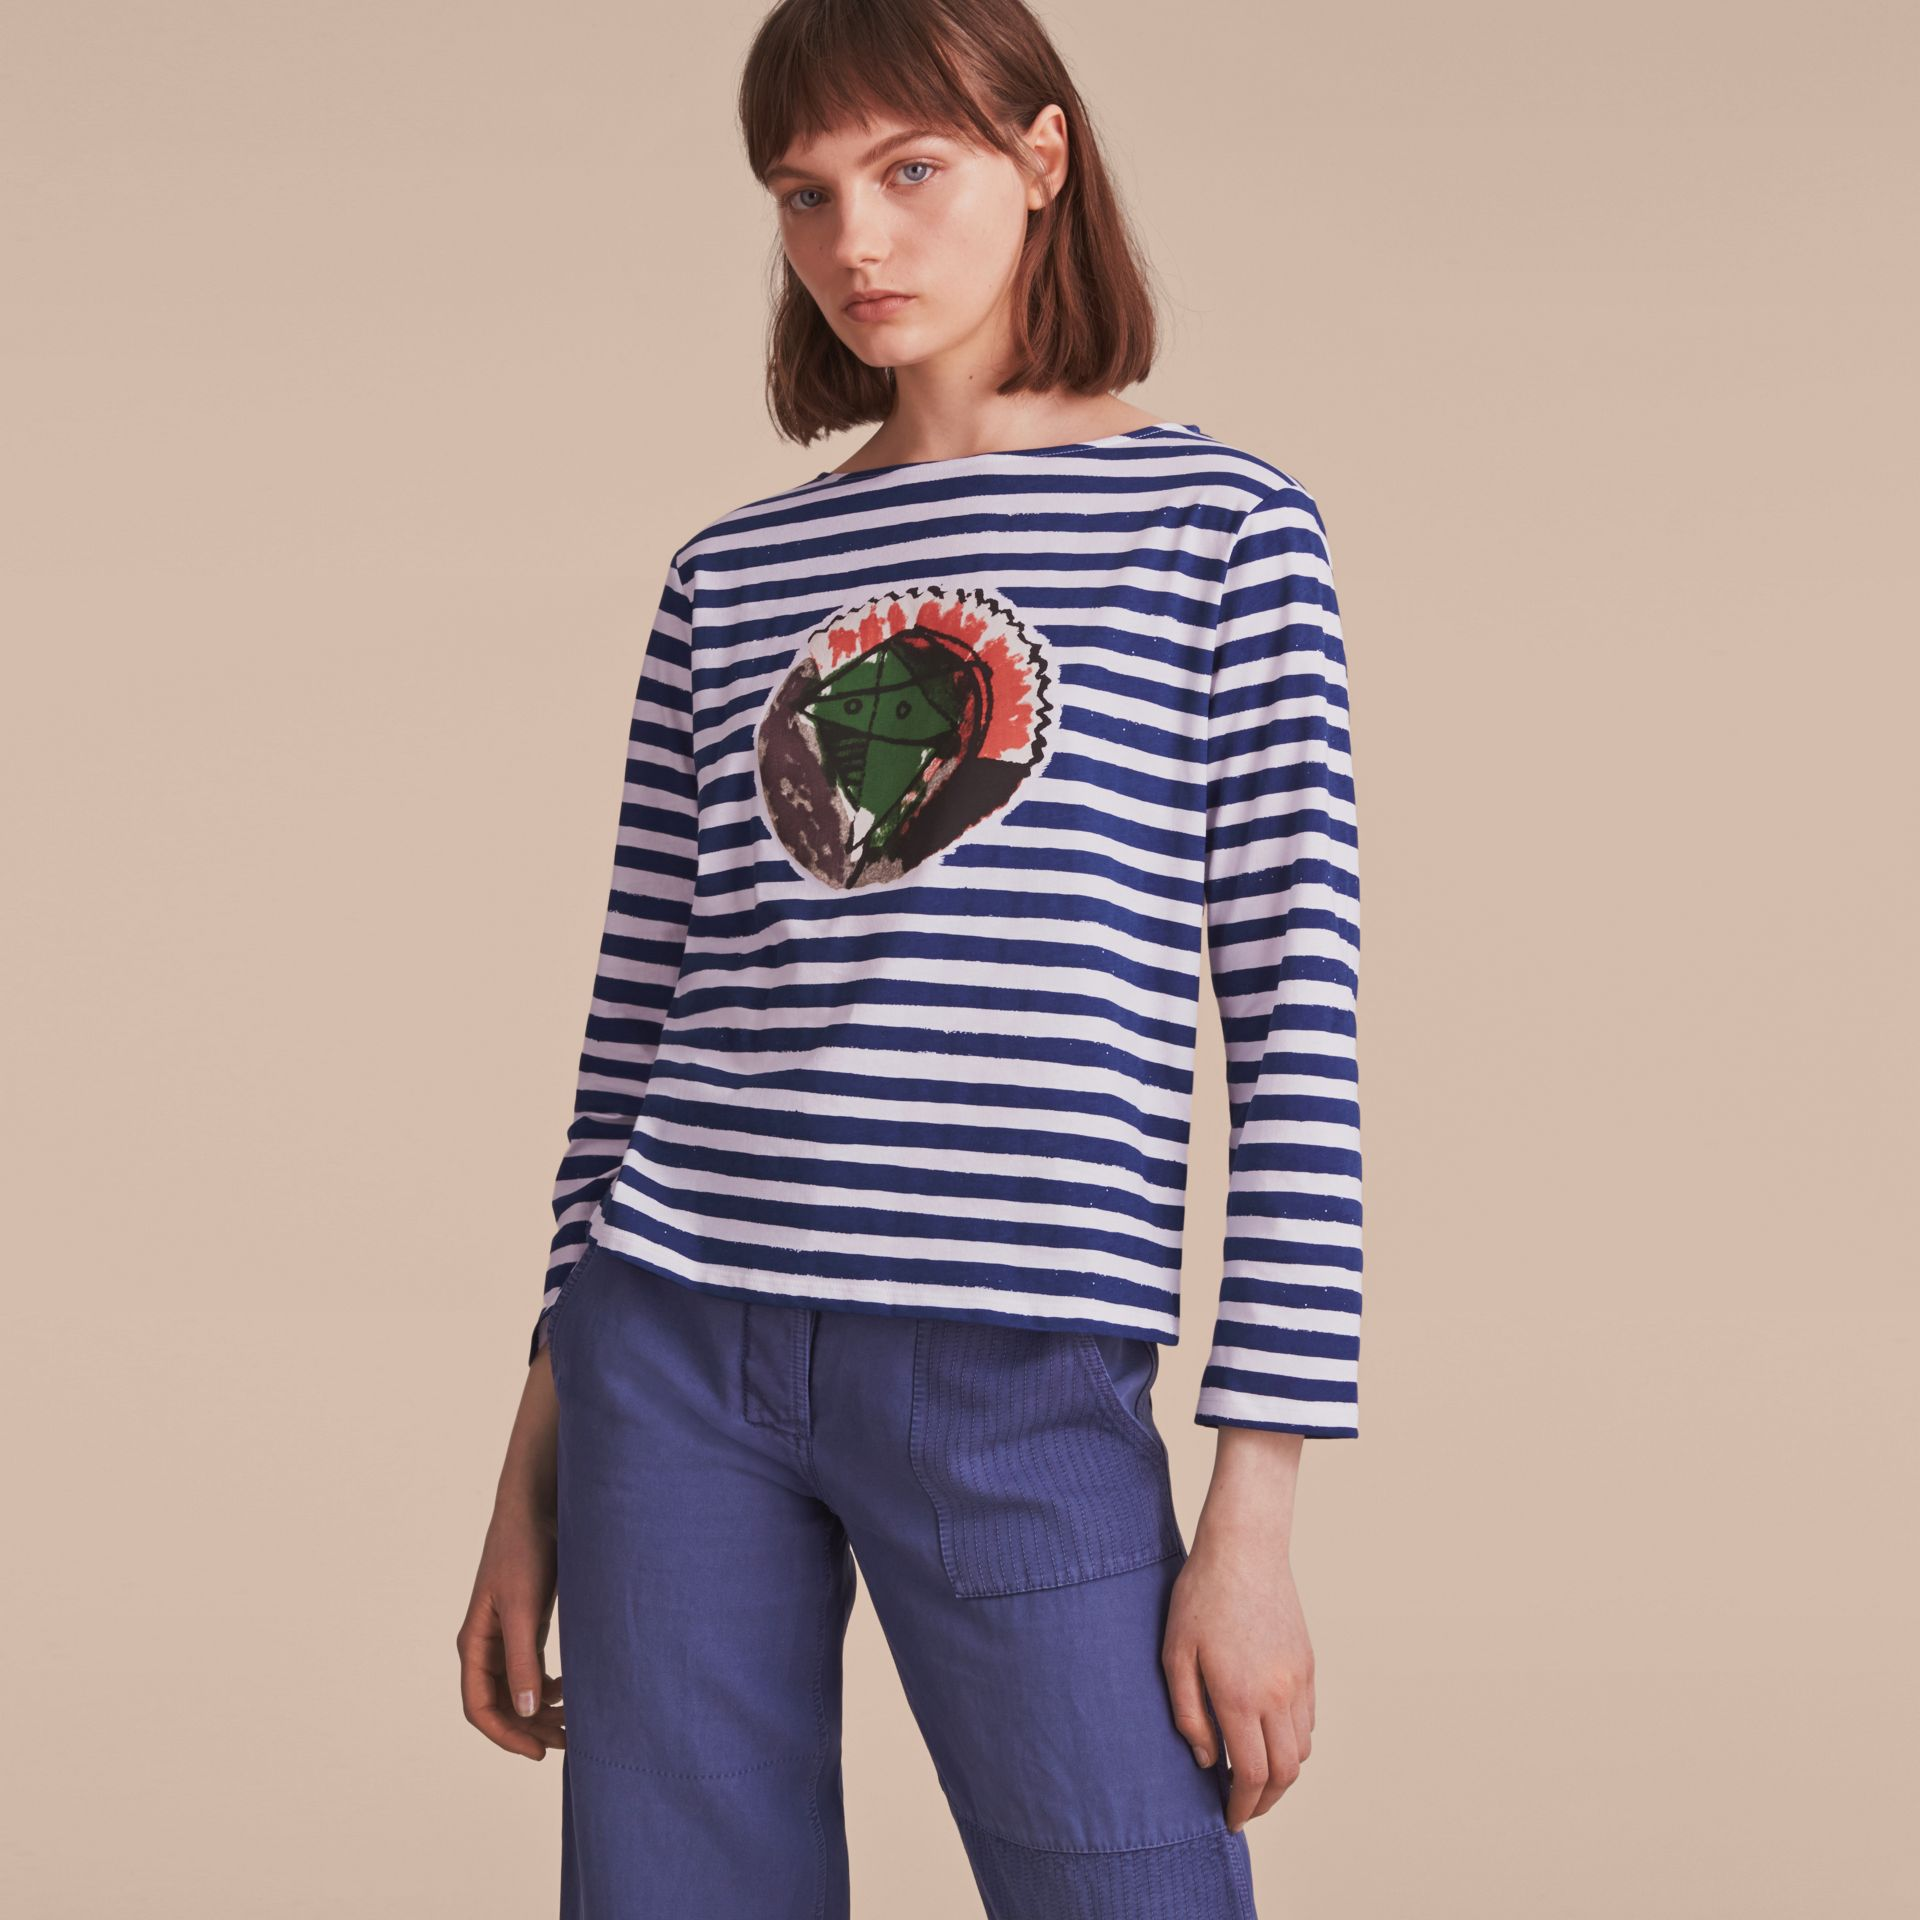 Pallas Heads Print Breton Stripe Jersey Top in Ink Blue/white - Women | Burberry Canada - gallery image 6